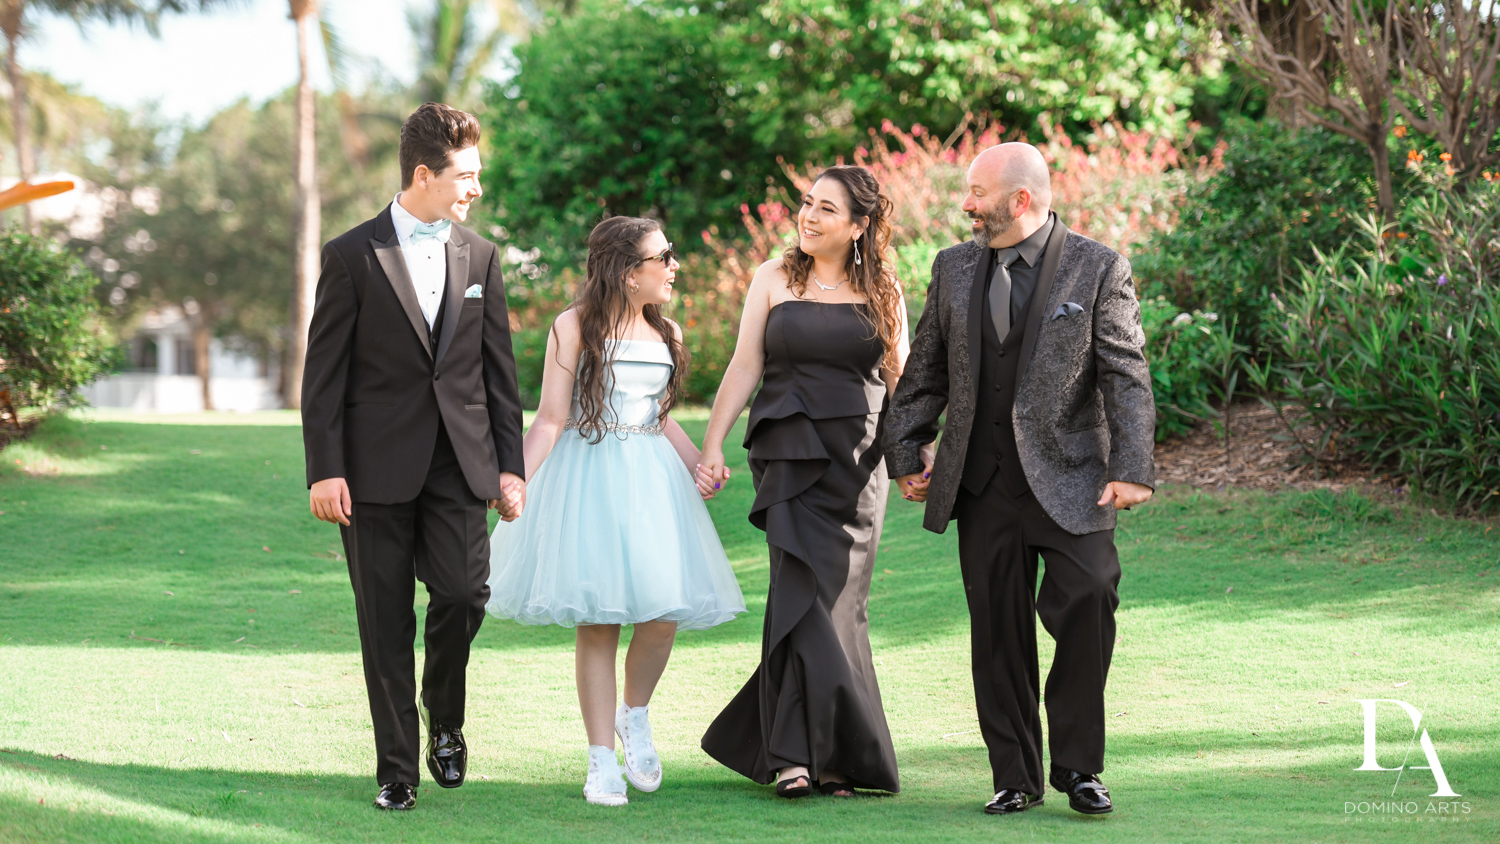 Family portrait at New York Theme Bat Mitzvah at Woodfield Country Club, Boca Raton by Domino Arts Photography